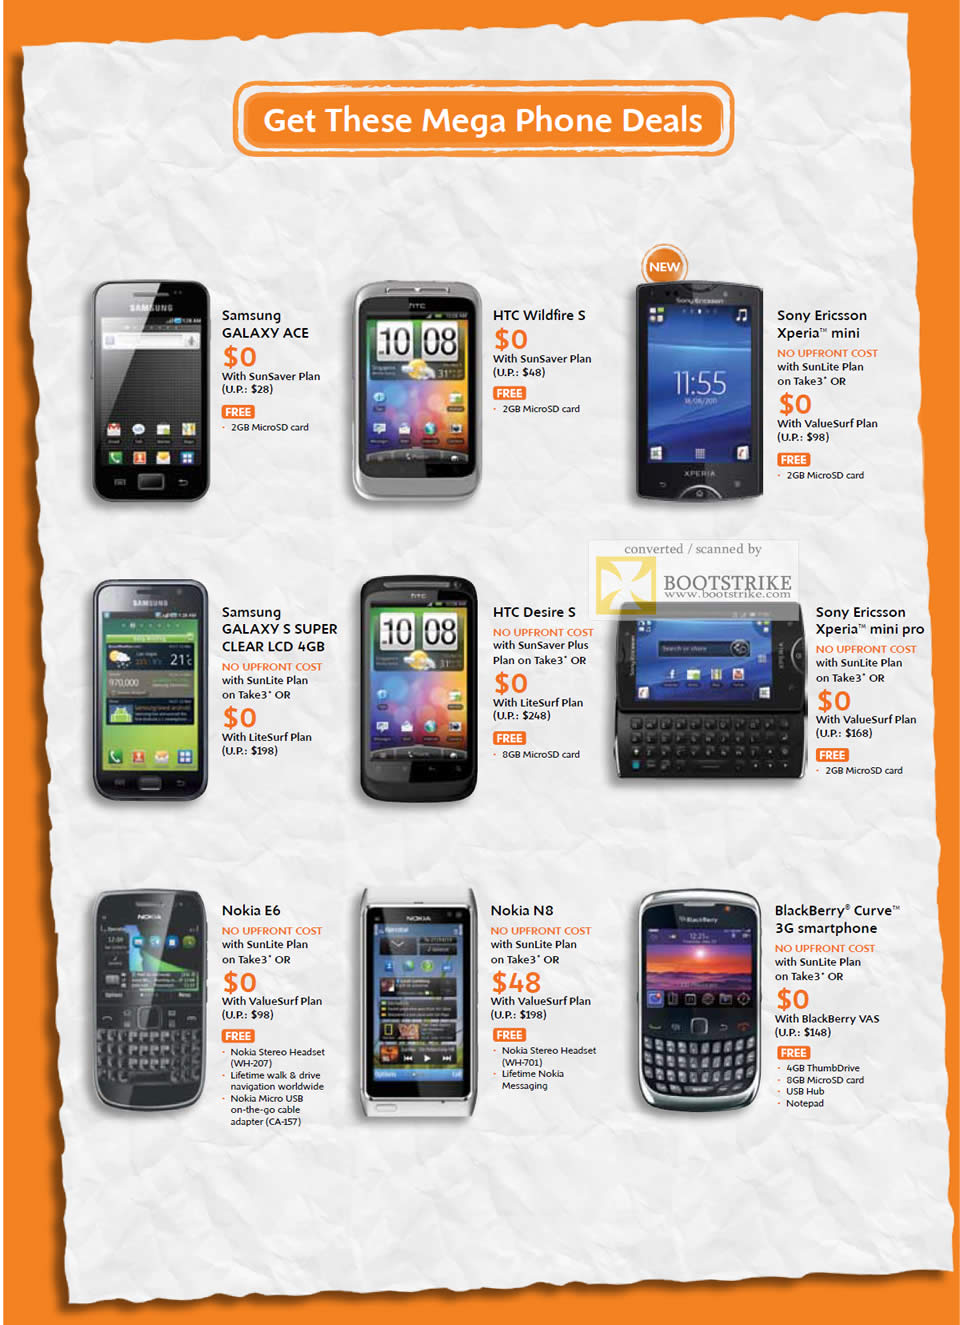 samsung galaxy phones list. comex 2011 price list image brochure of m1 phones samsung galaxy ace s super clear lcd. « e